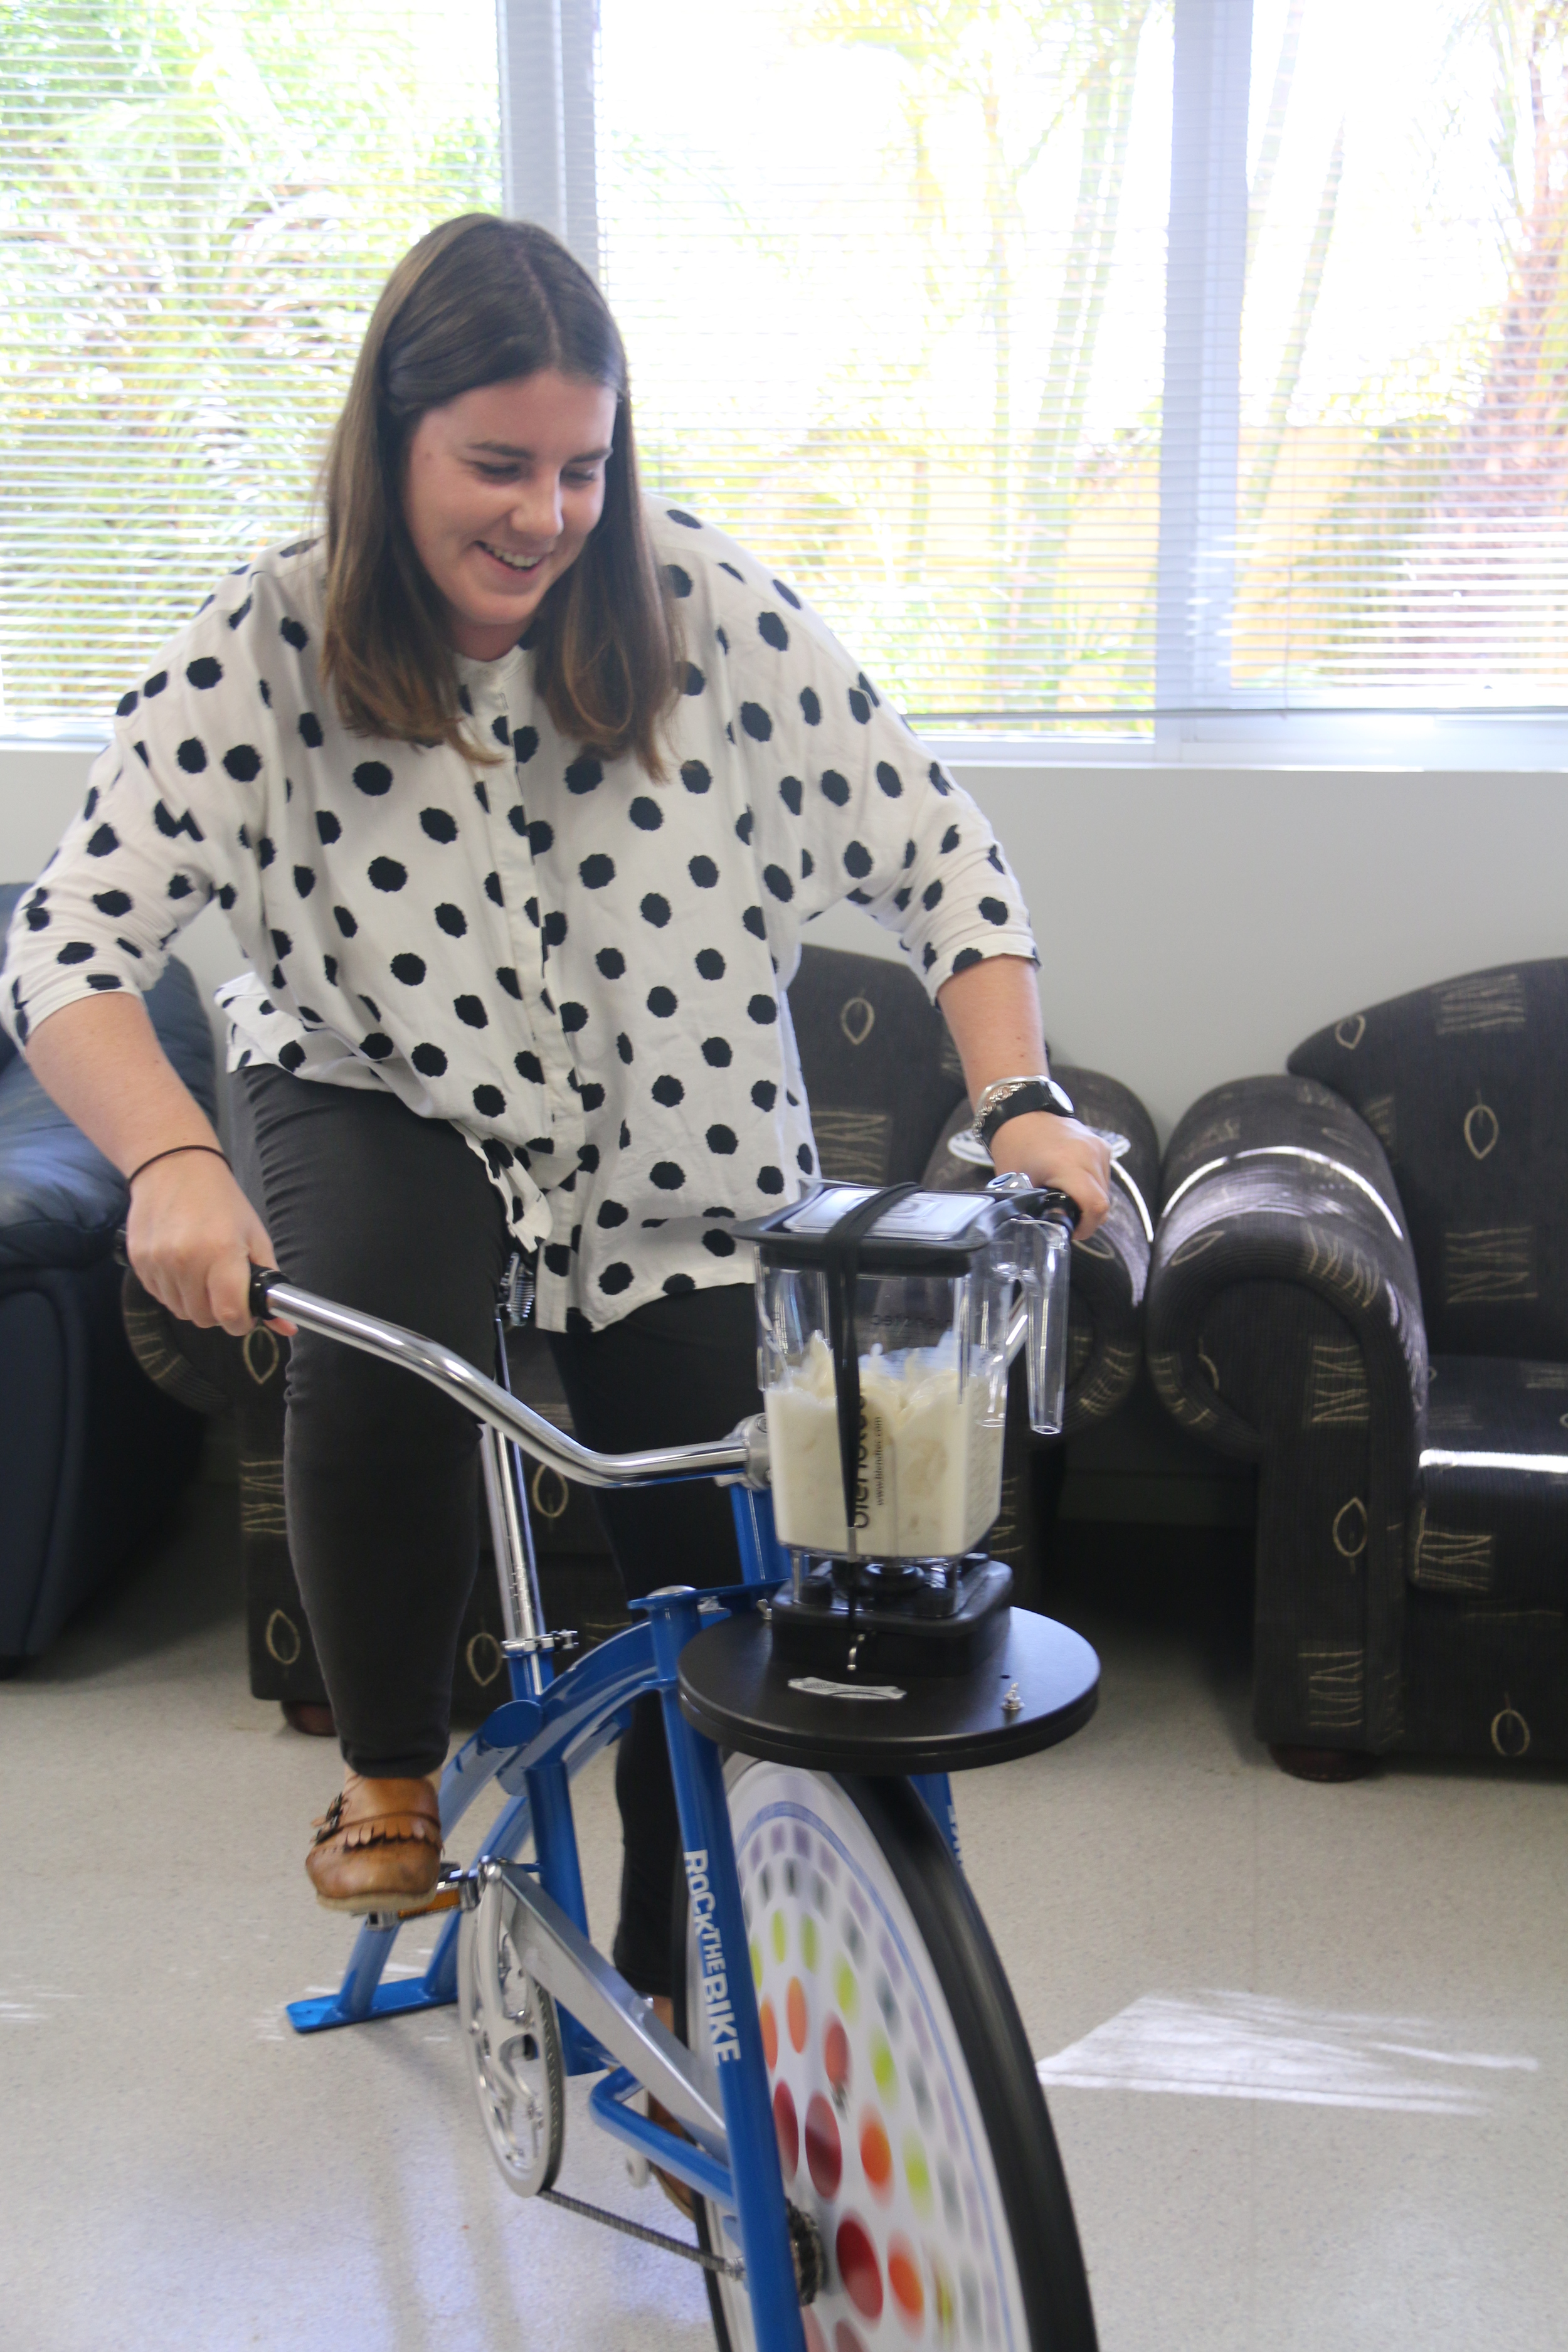 WACRH Research Assistant Fiona Lucy demonstrating how to make a smoothie on the Fender Blender Bike.